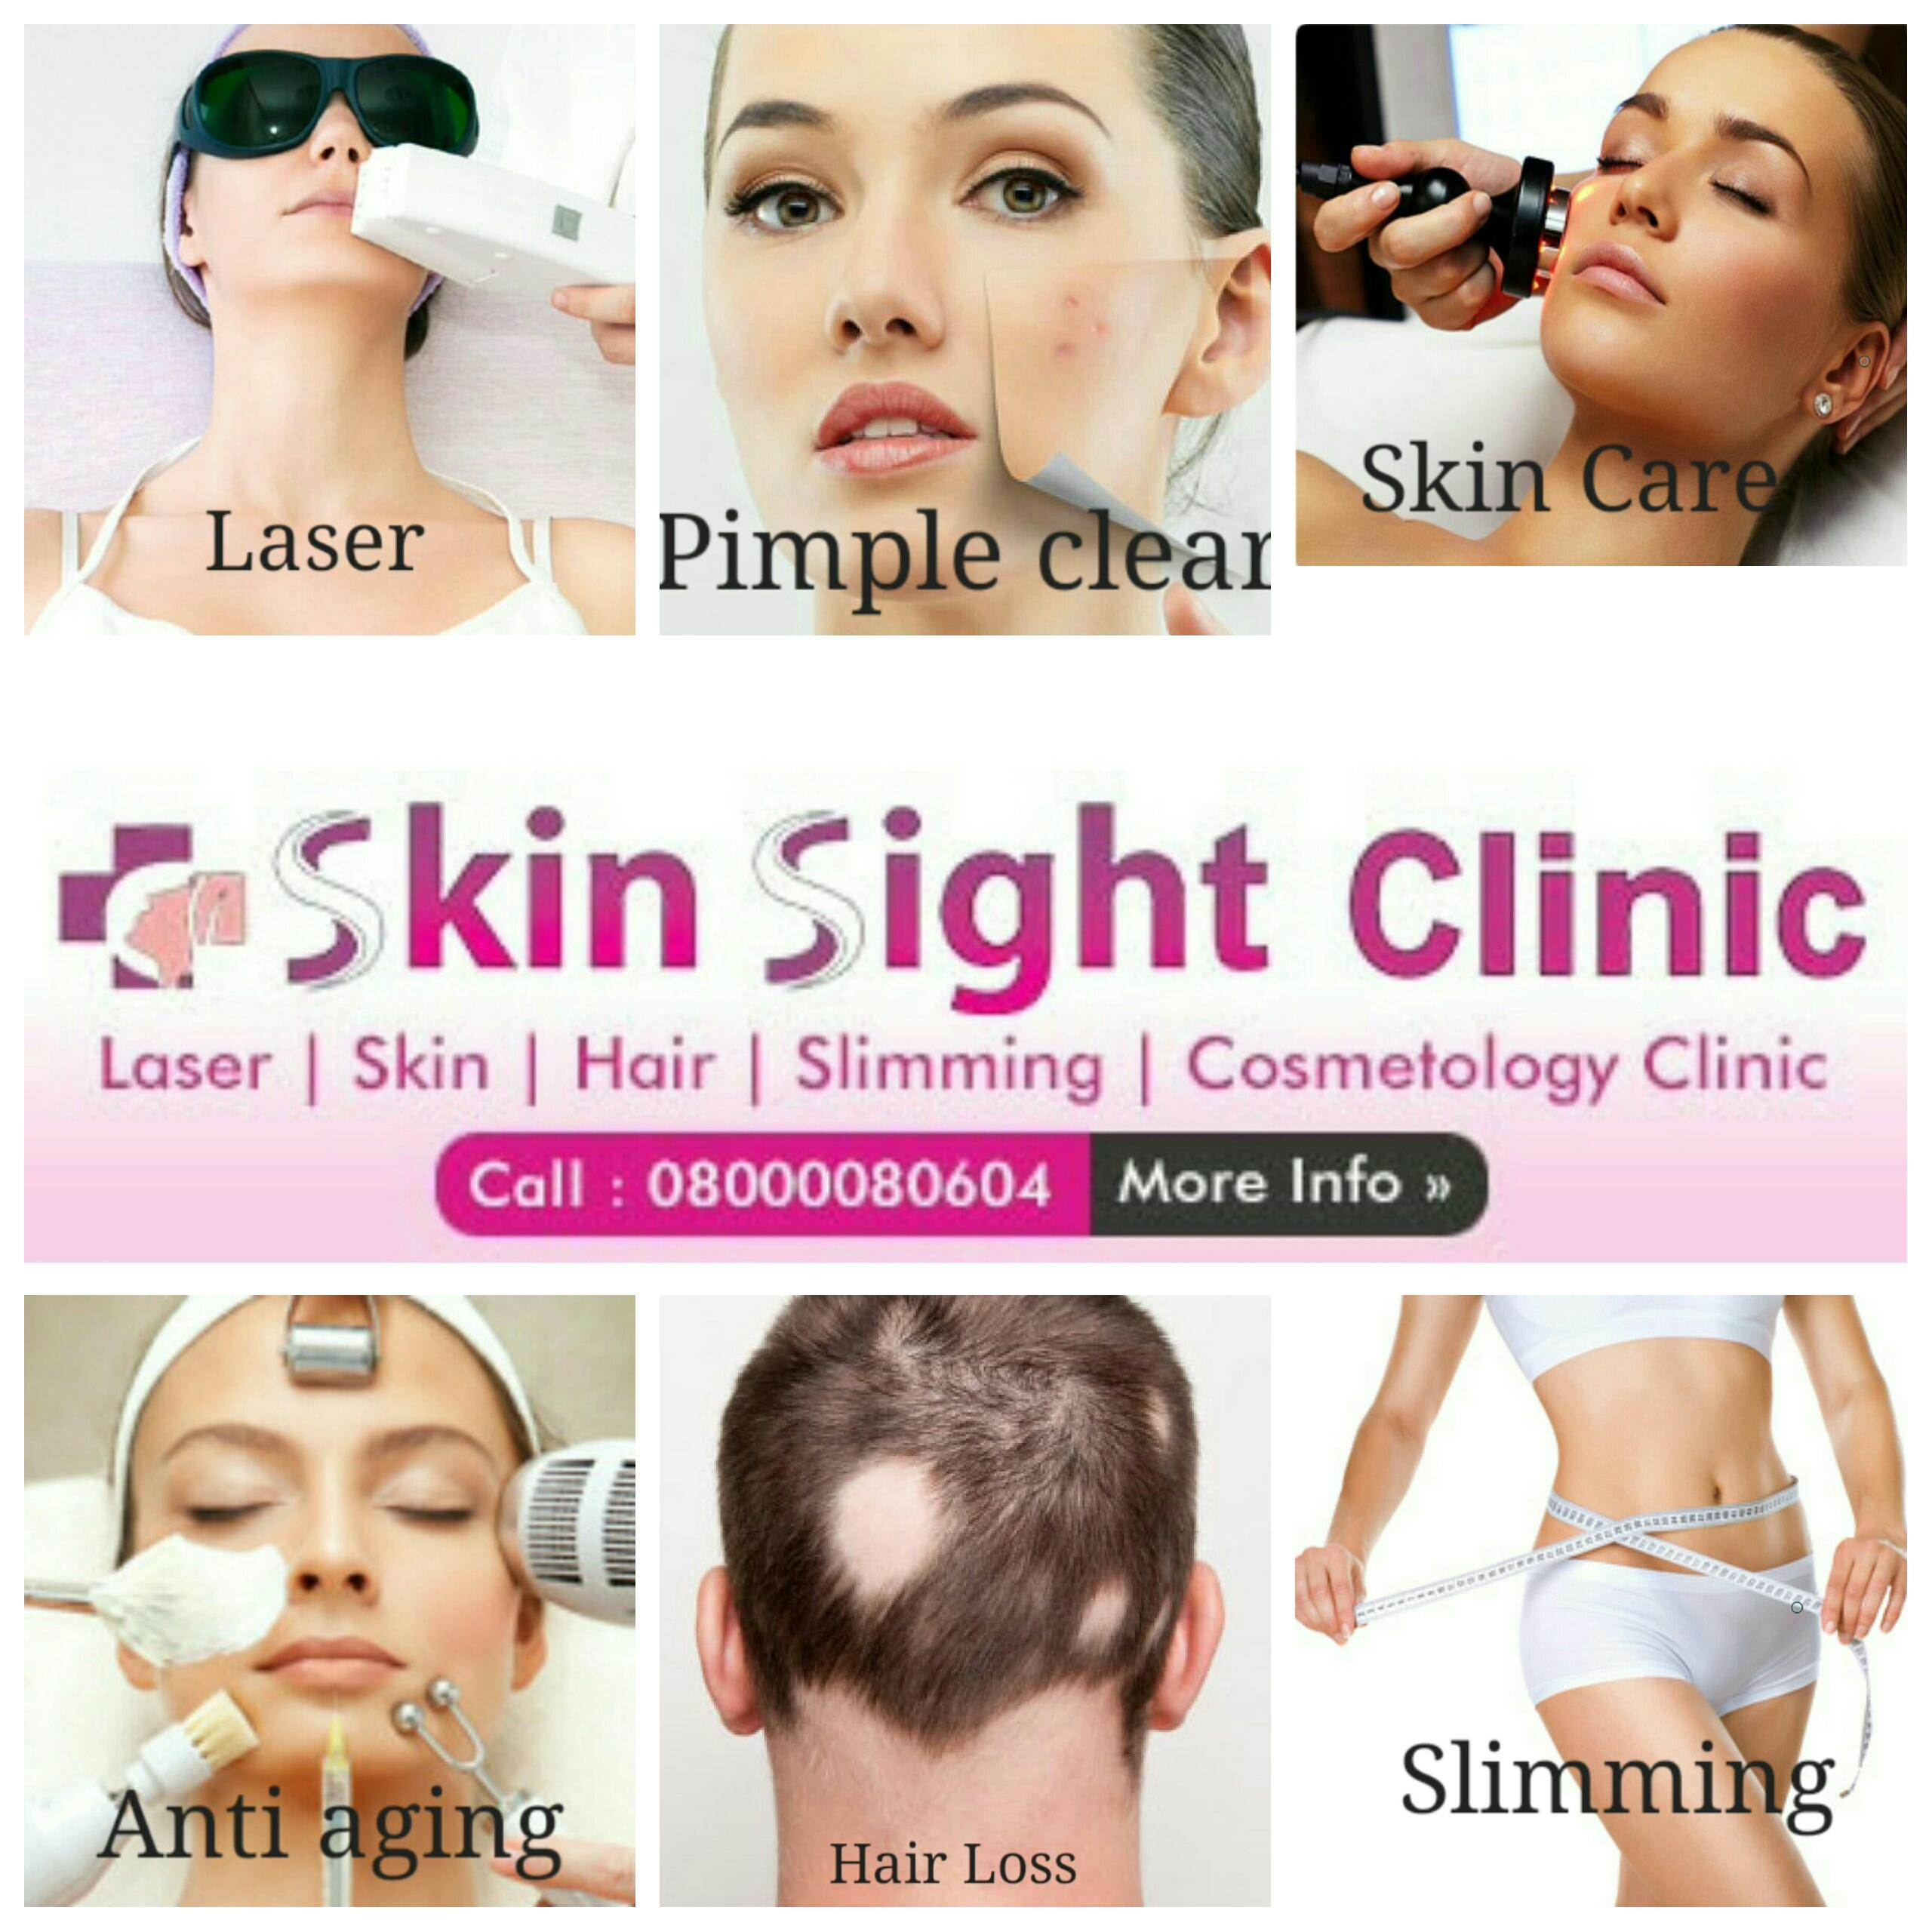 Skin Sight and Orthopaedic Clinic